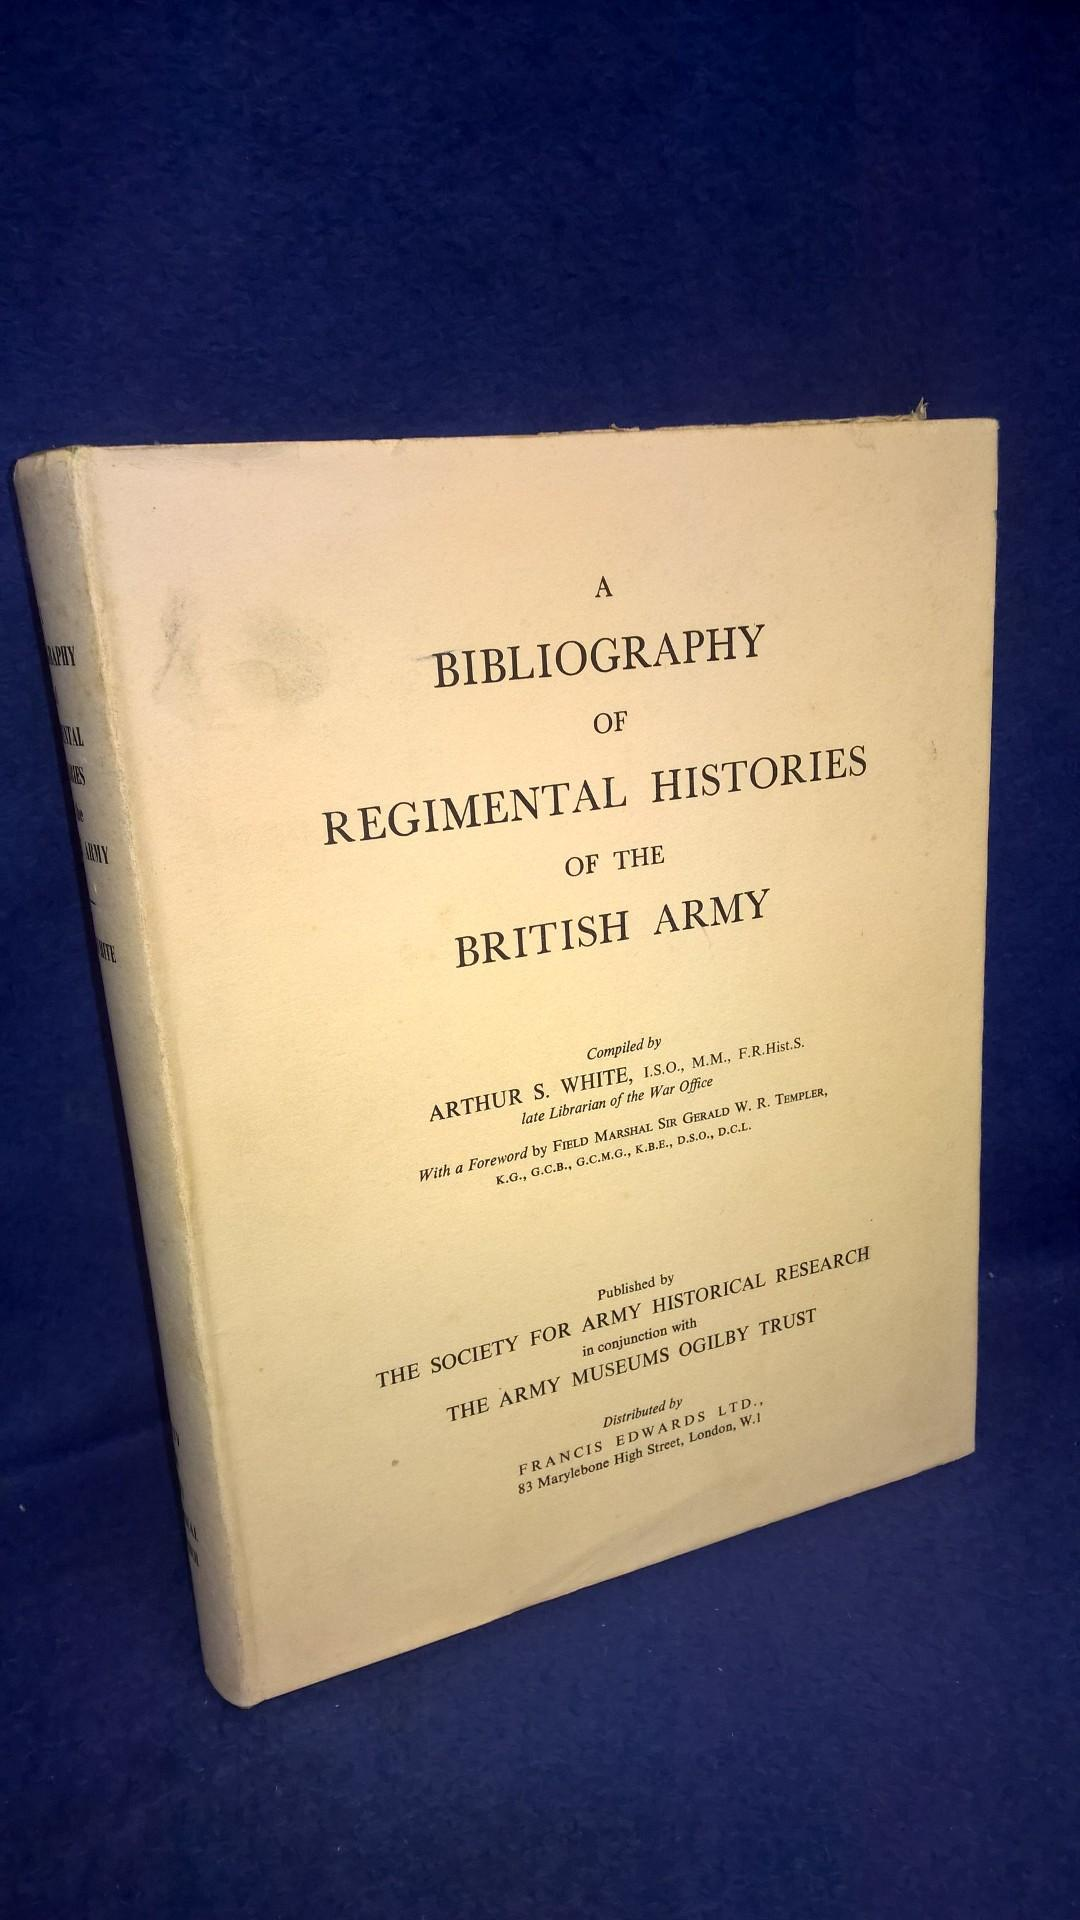 A Bibliography of Regimental Histories of the British Army.